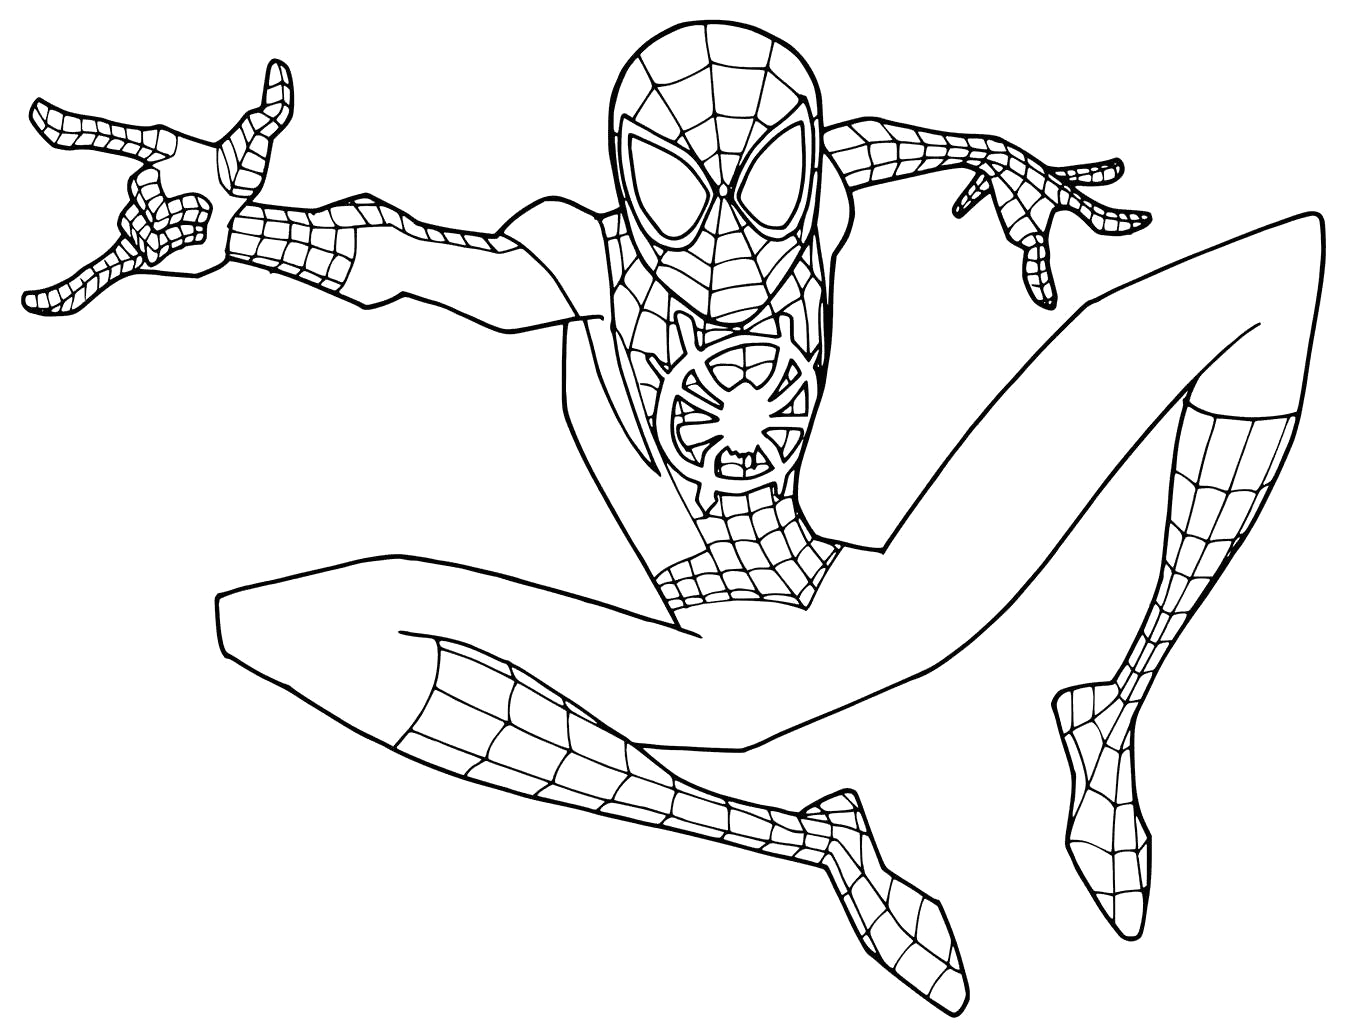 Spider Man Into Spider Verse Coloring Pages Spider Man Into the Spider Verse Coloring Pages Young